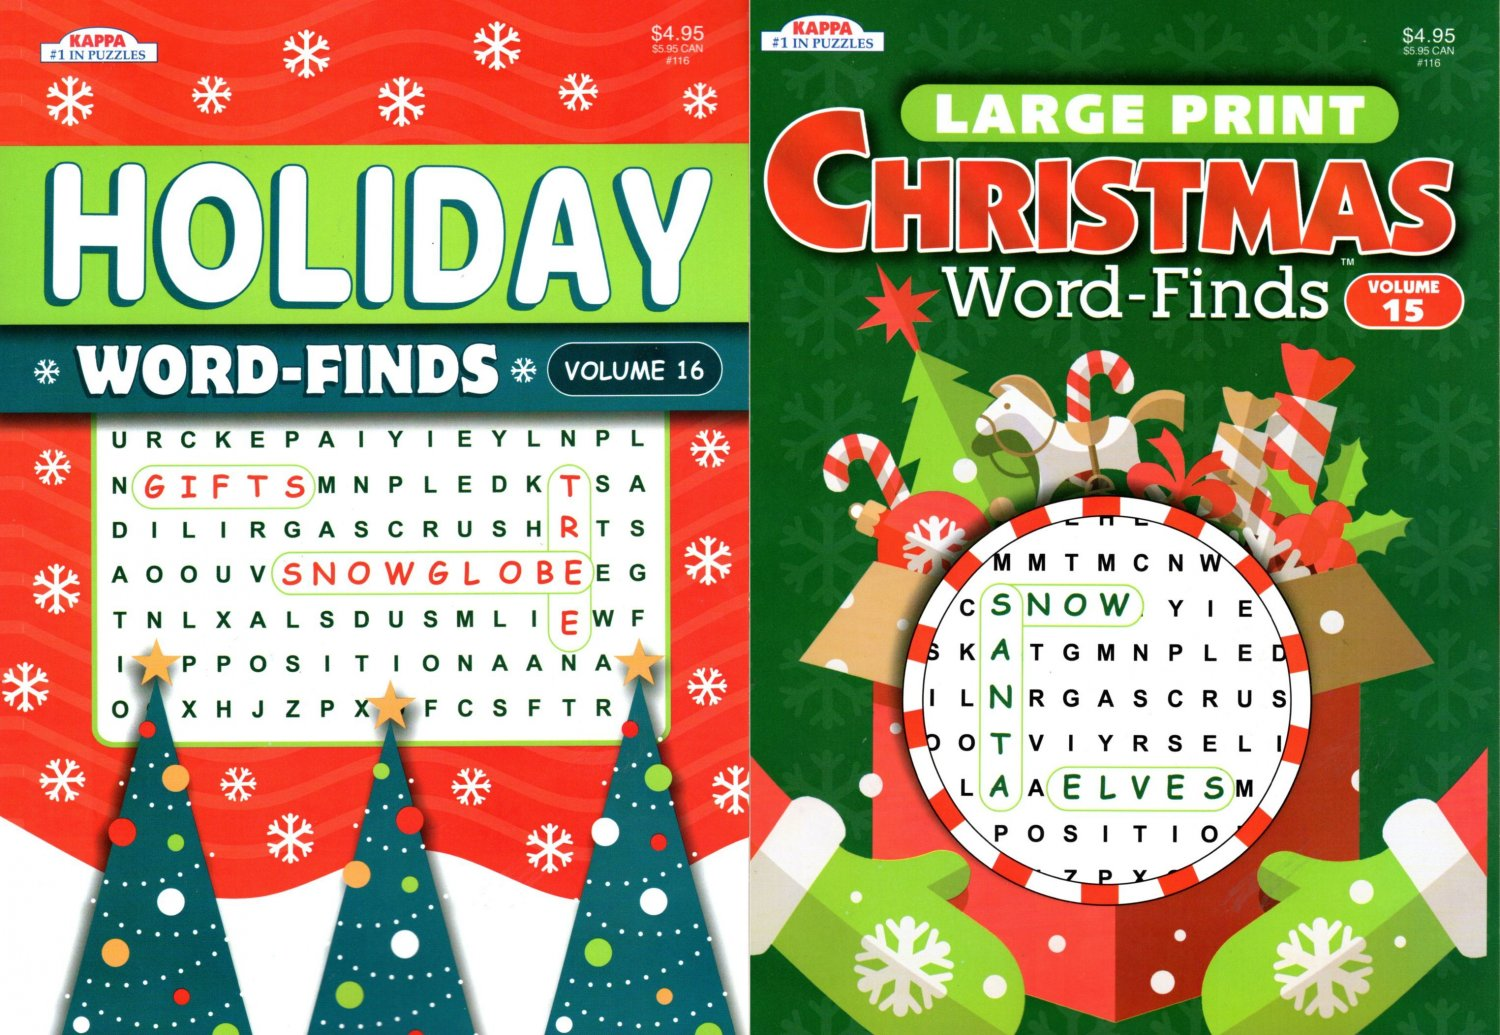 Large Print - Christmas Holiday - Word-Finds vol.15-16 (Set of 2 Books)